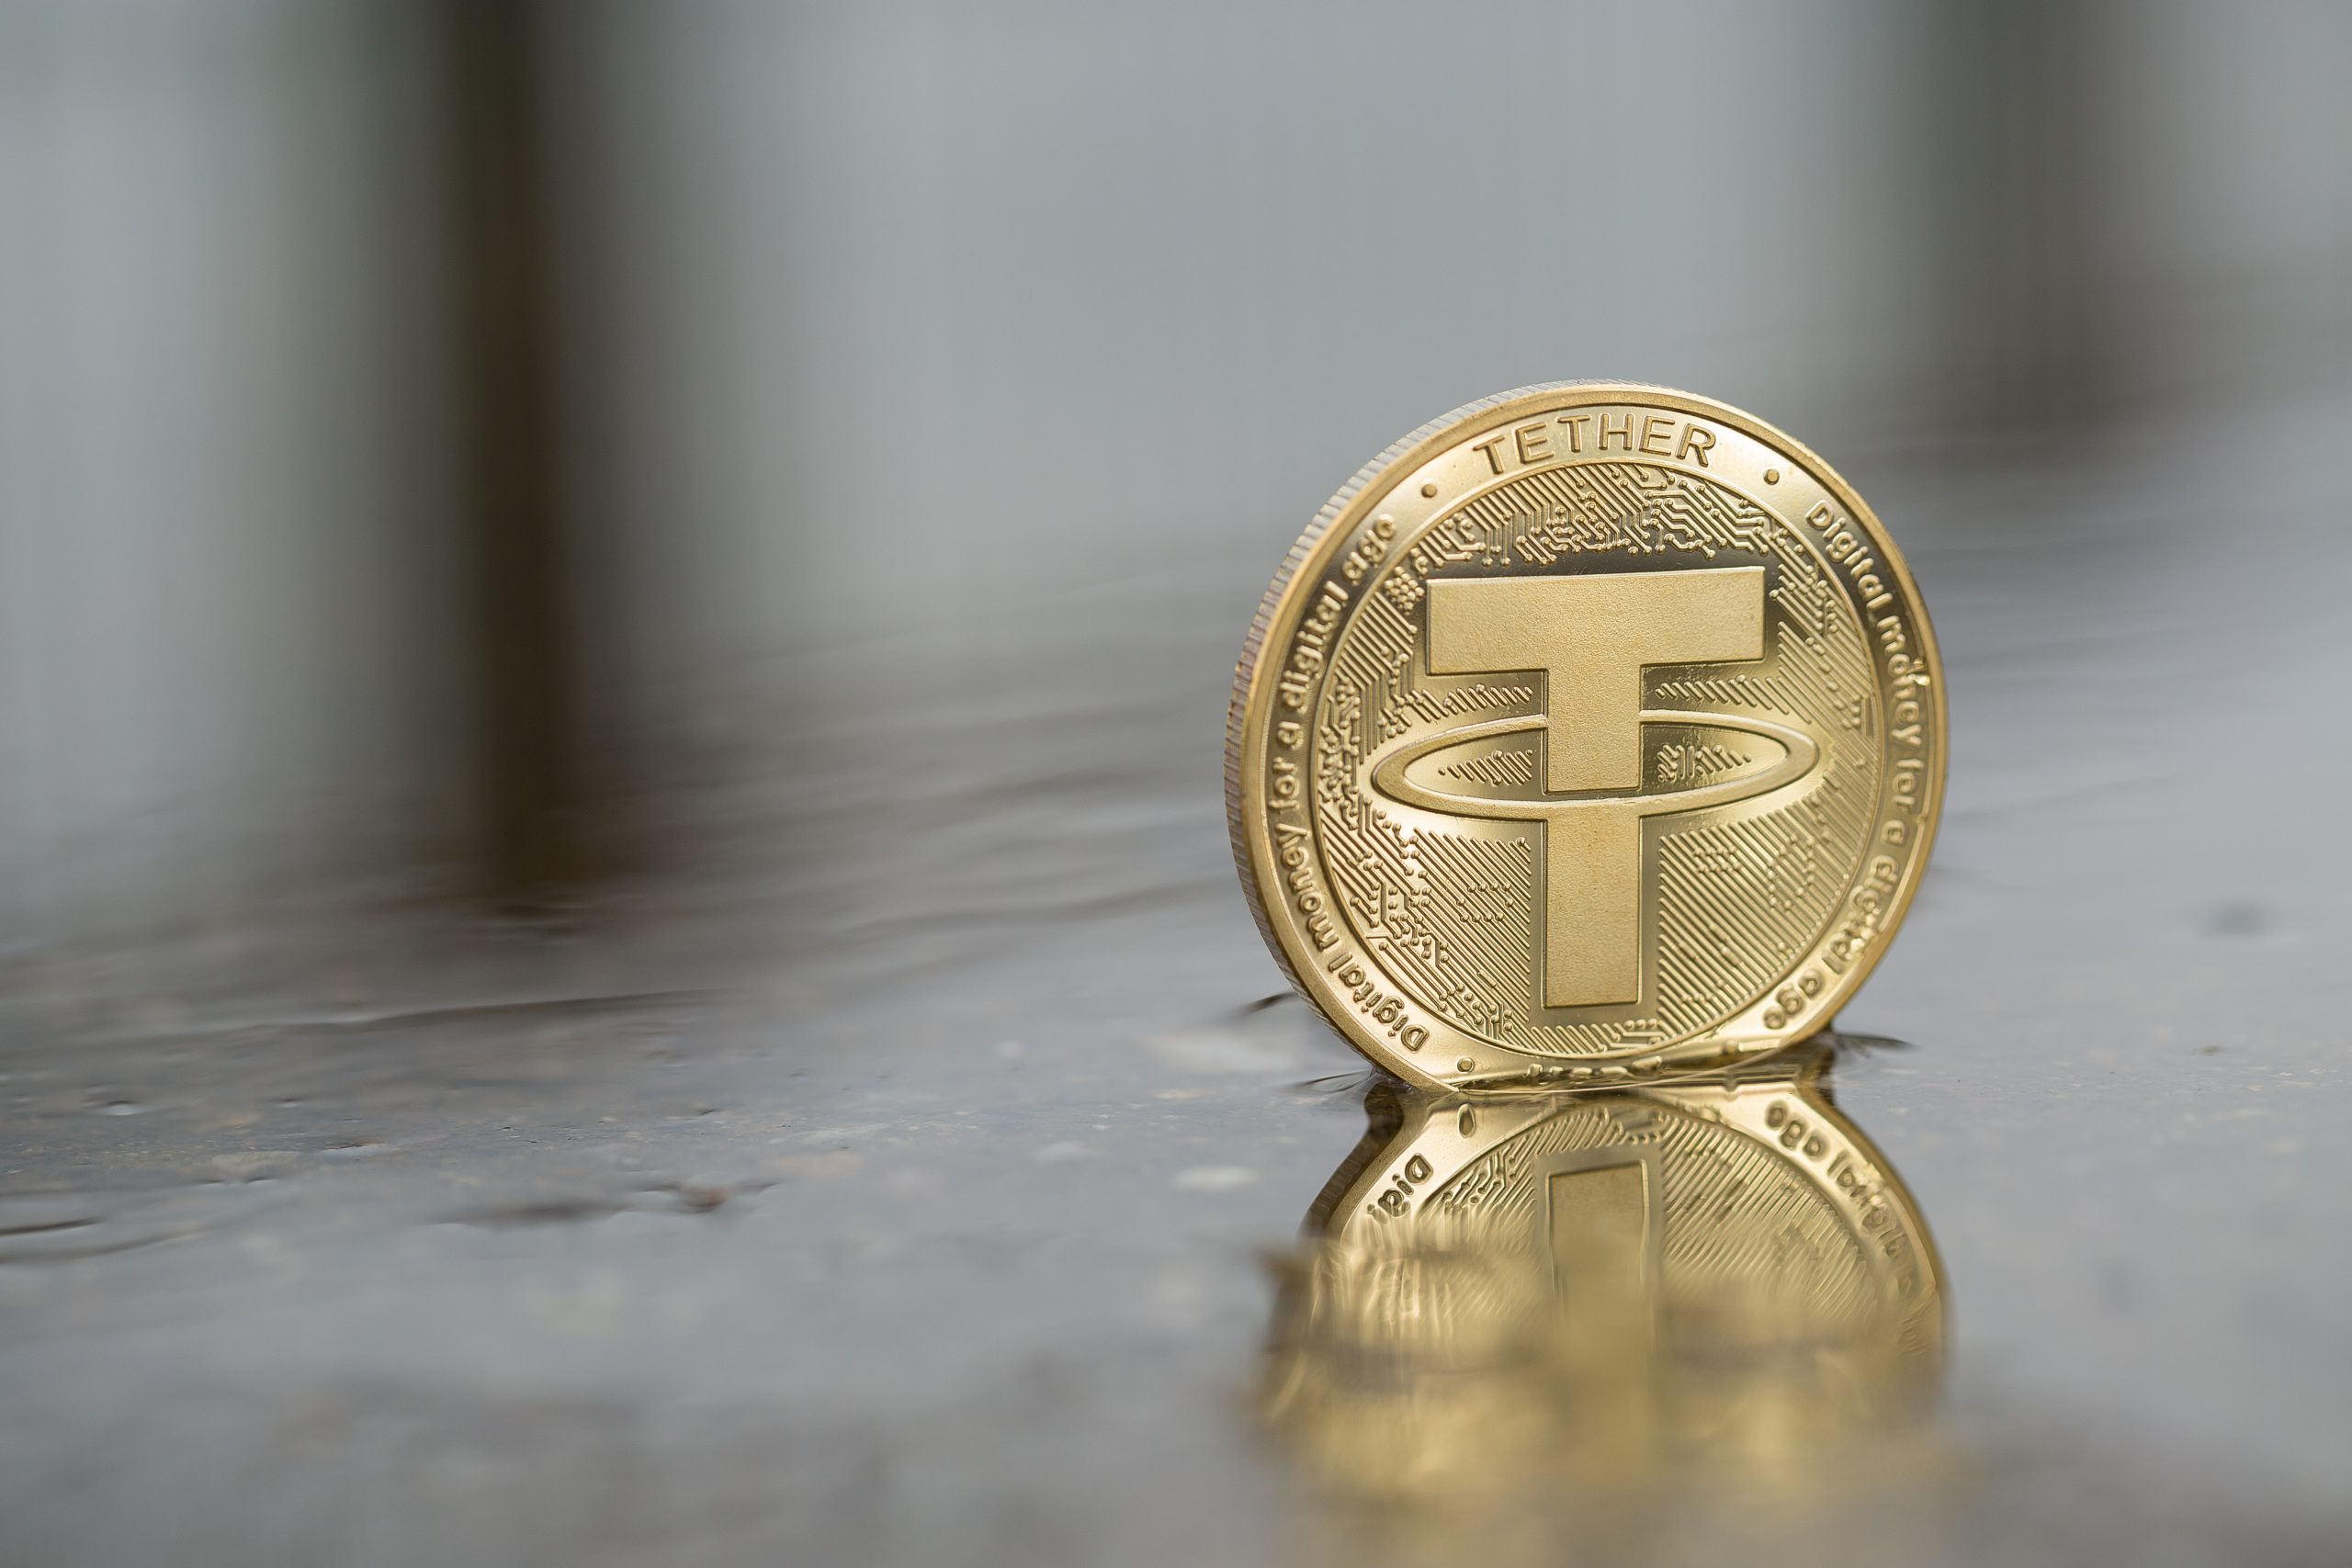 Is Tether Simply a Rip-off to Enrich Bitcoin Merchants?